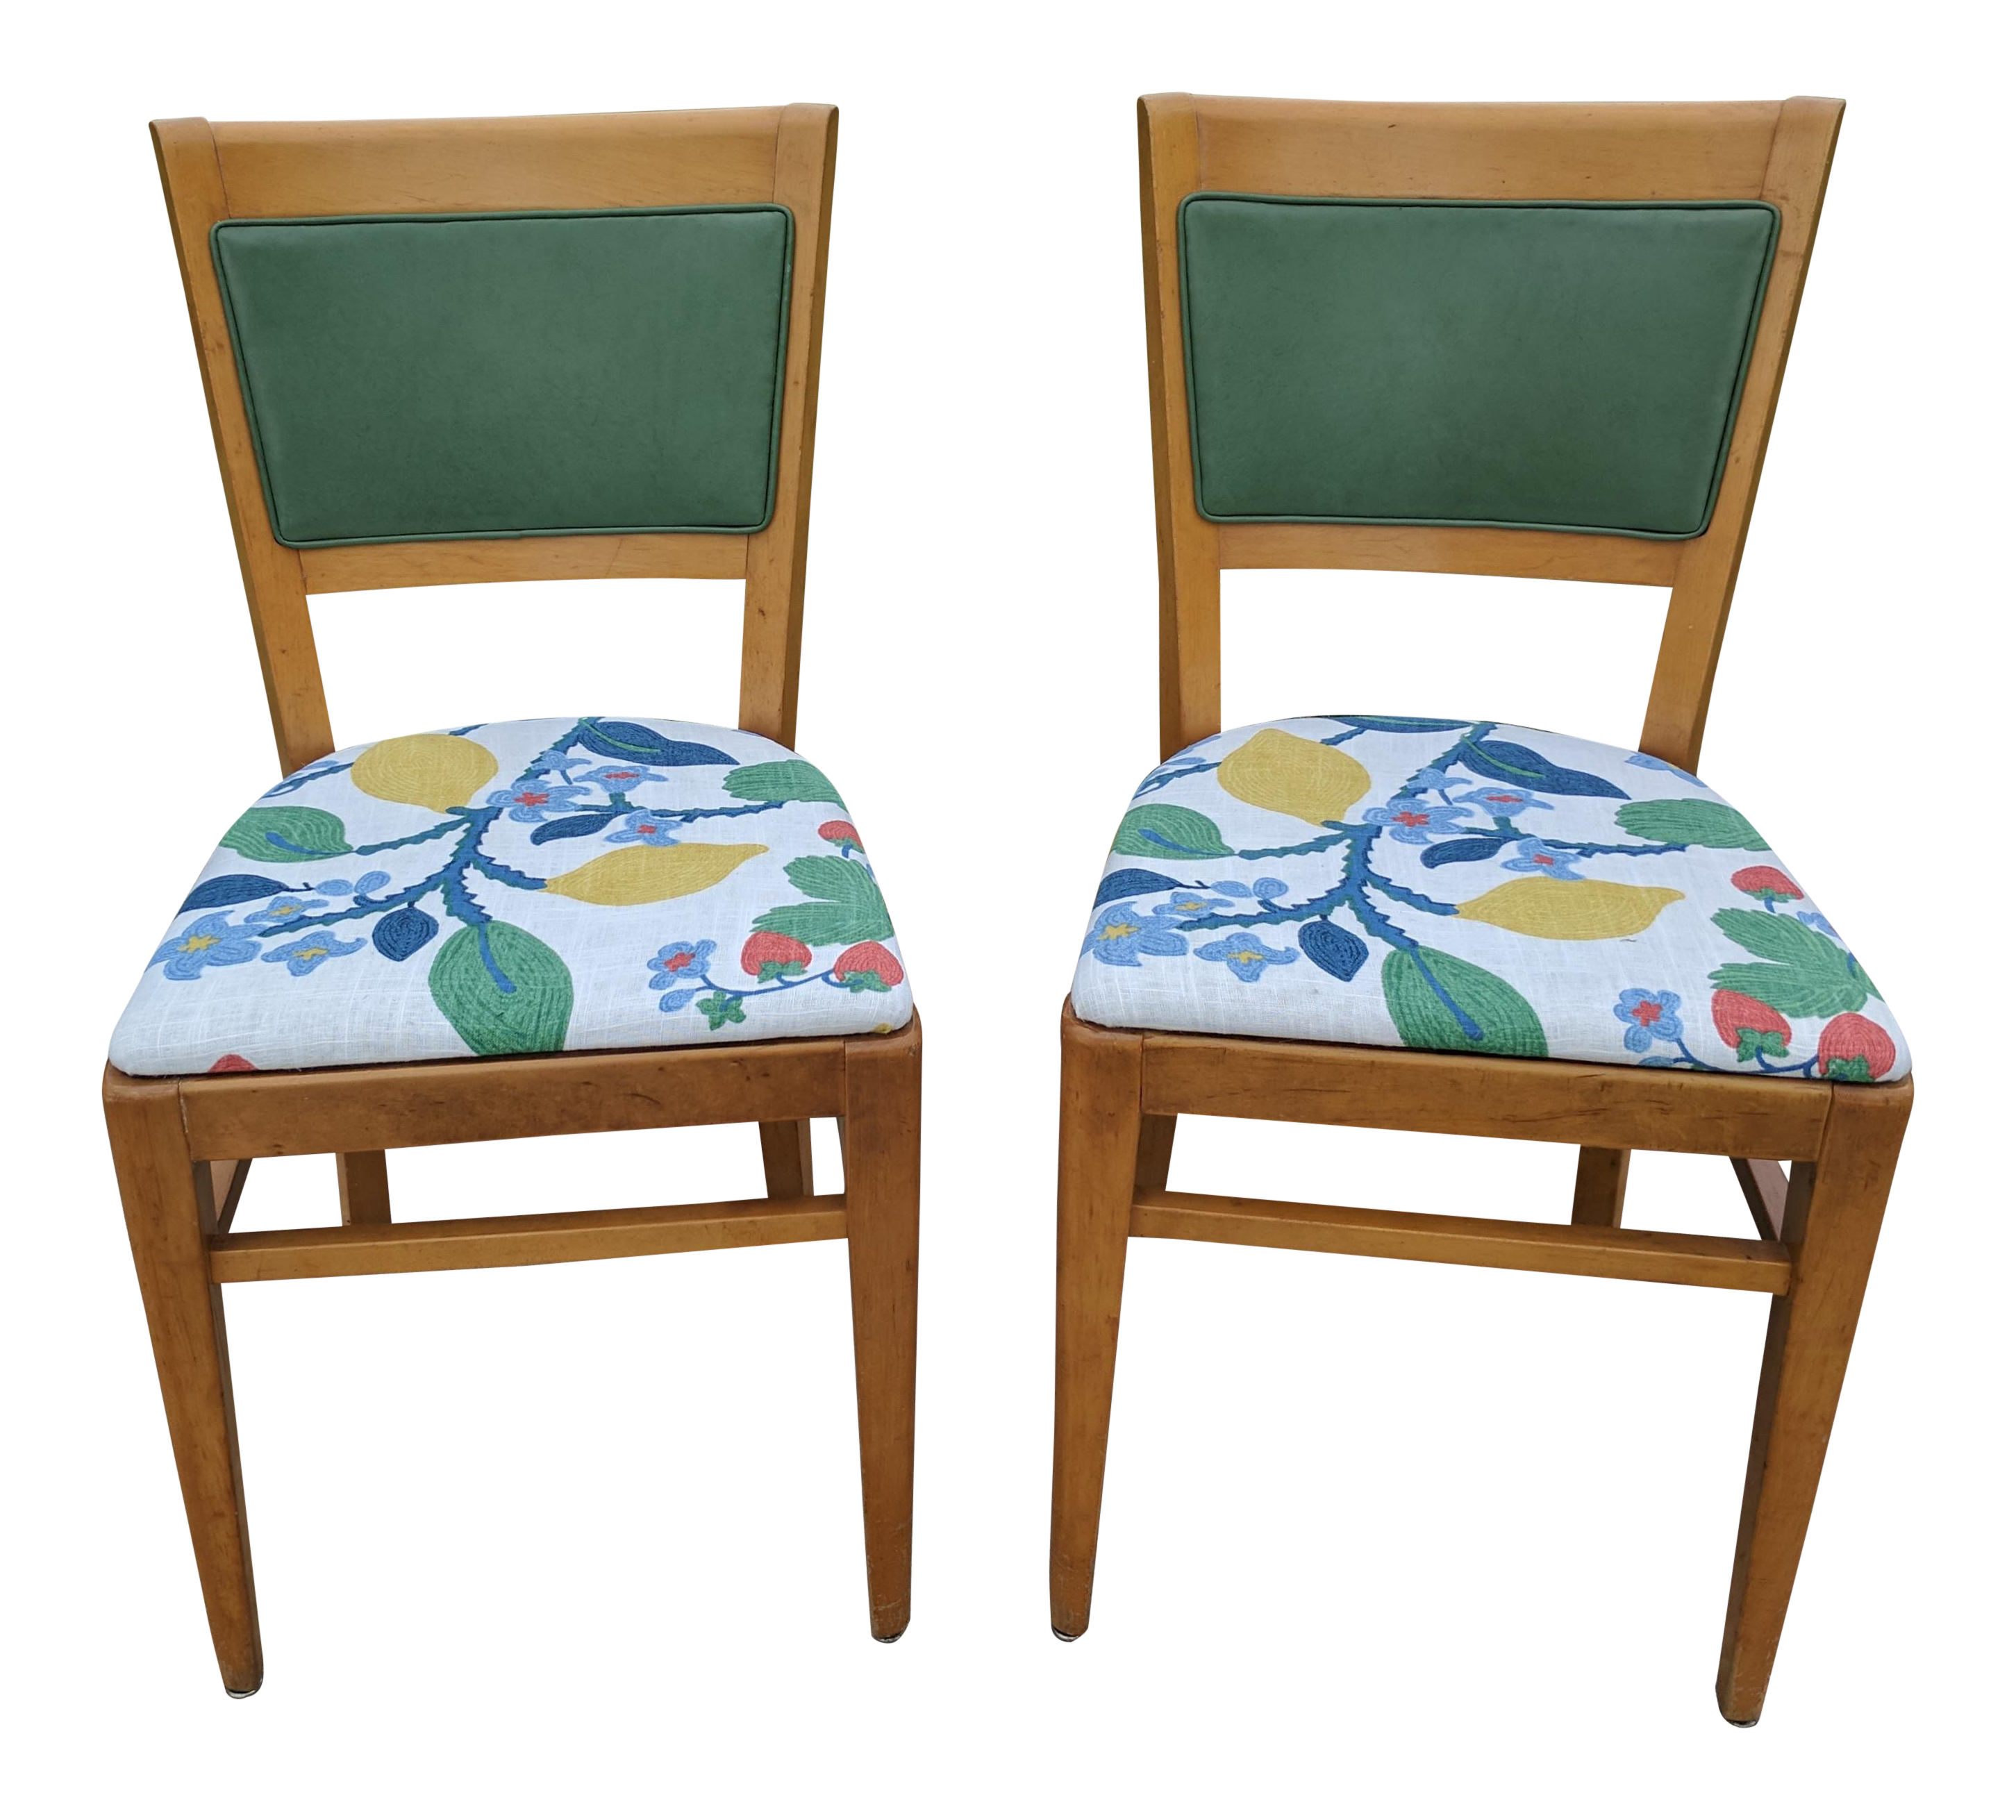 Green Upholstered Chair A Pair 1950s Thonet Green Leather And Madcap Cottage Fabric Upholstered Chairs